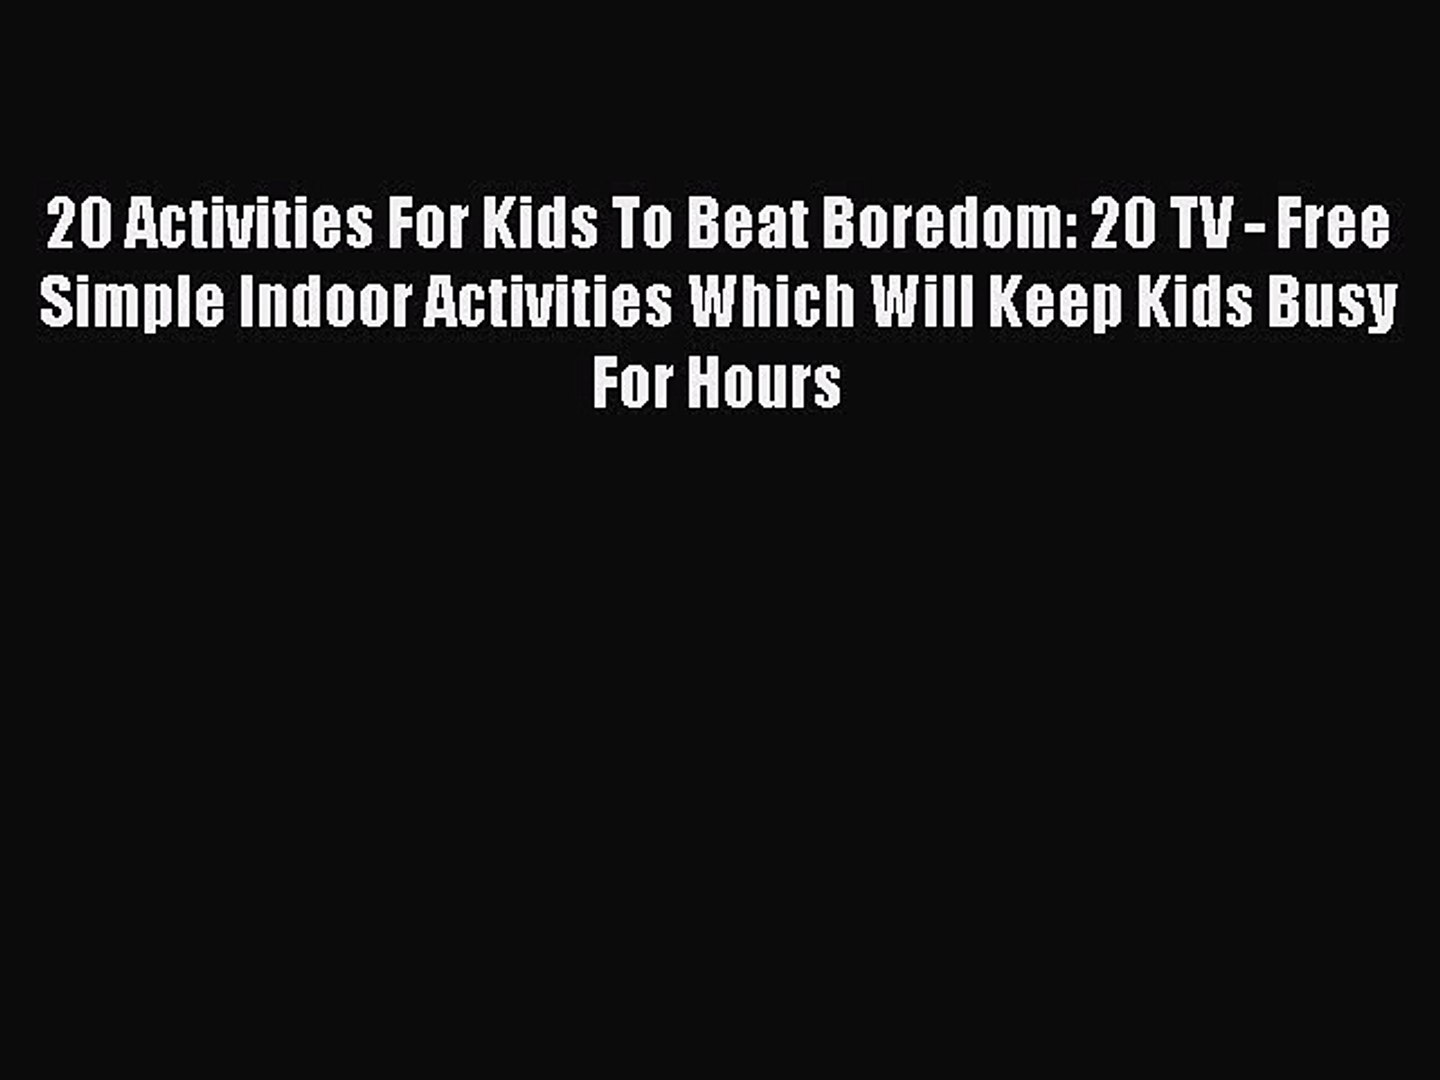 PDF 20 Activities For Kids To Beat Boredom: 20 TV - Free Simple Indoor Activities Which Will